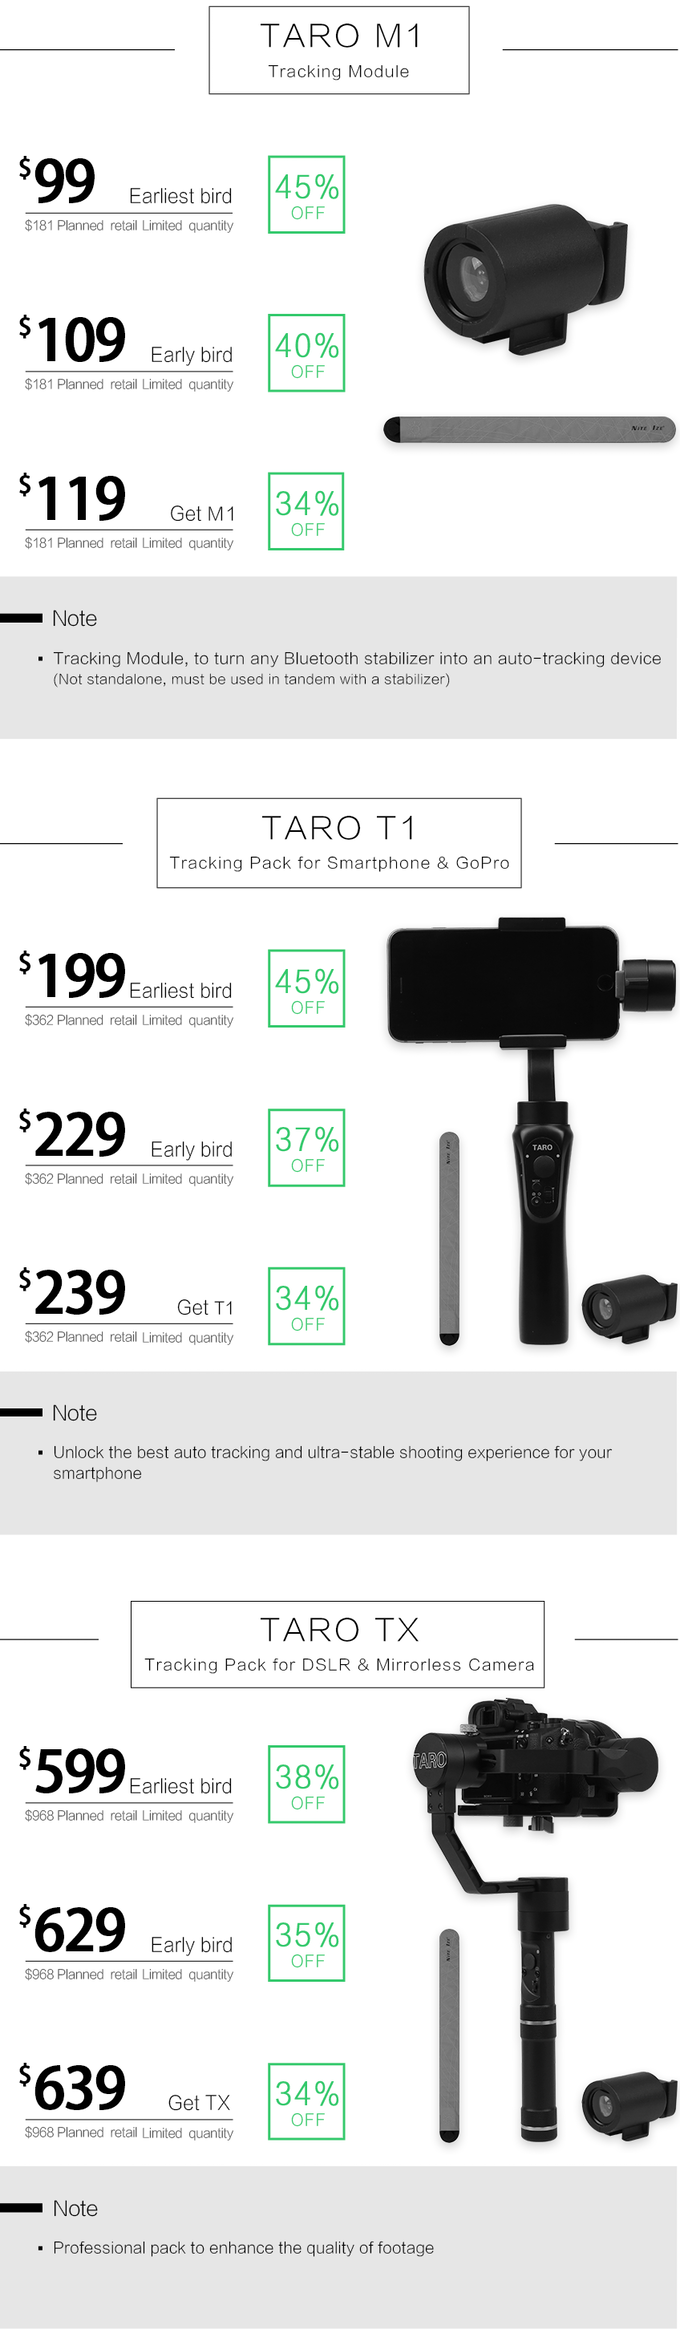 Taro Your Next Camera Mate Auto Tracking Stabilizer 20 By Aro Wiring Diagram Most Stabilizers Now Available Have A Limited Range Of Rotation Which Can Cause Lot Problems When Solved This Issue Incorporating